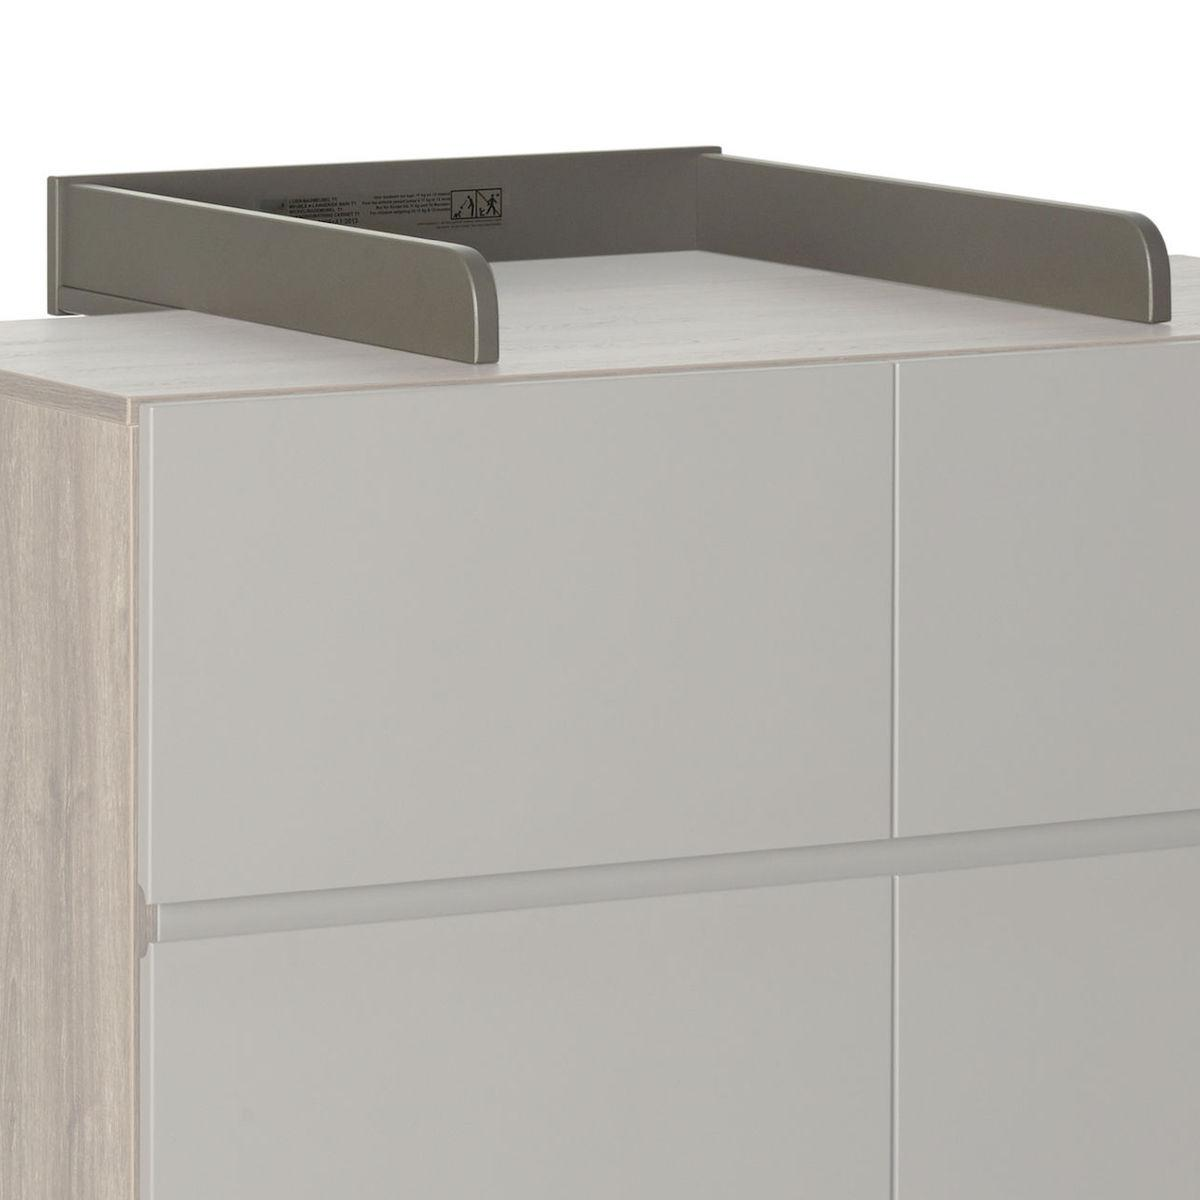 Plan à langer commode TRENDY Quax royal Oak